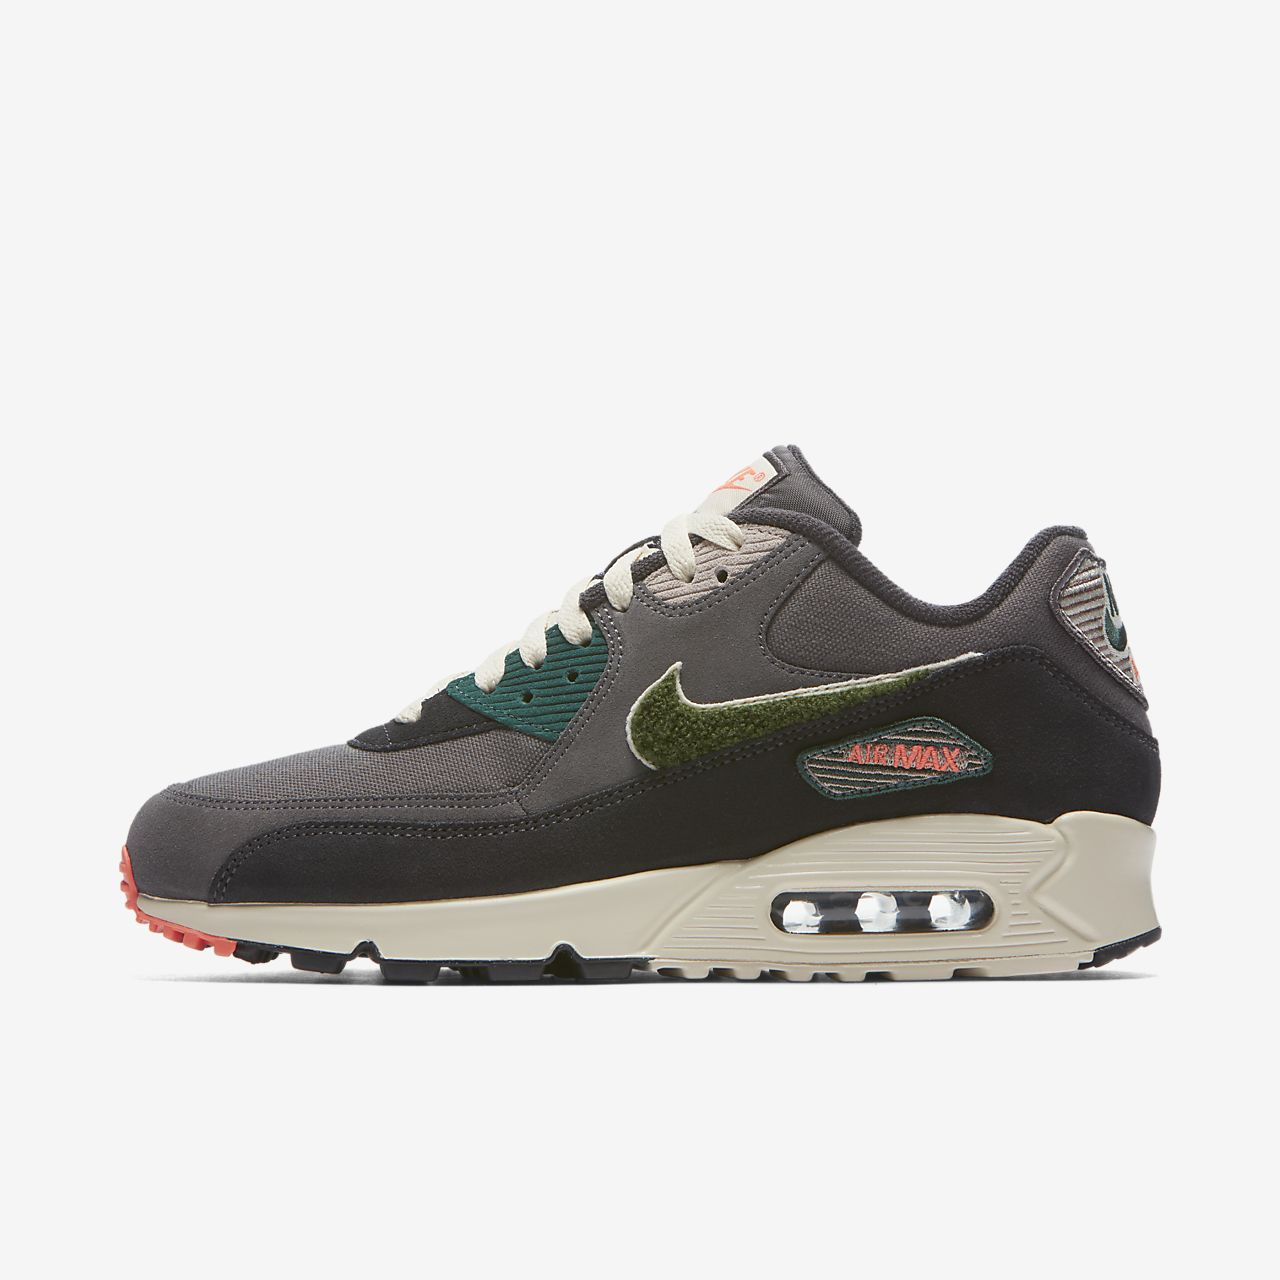 free shipping be8d1 0b5da ... Nike Air Max 90 Premium SE Herrenschuh